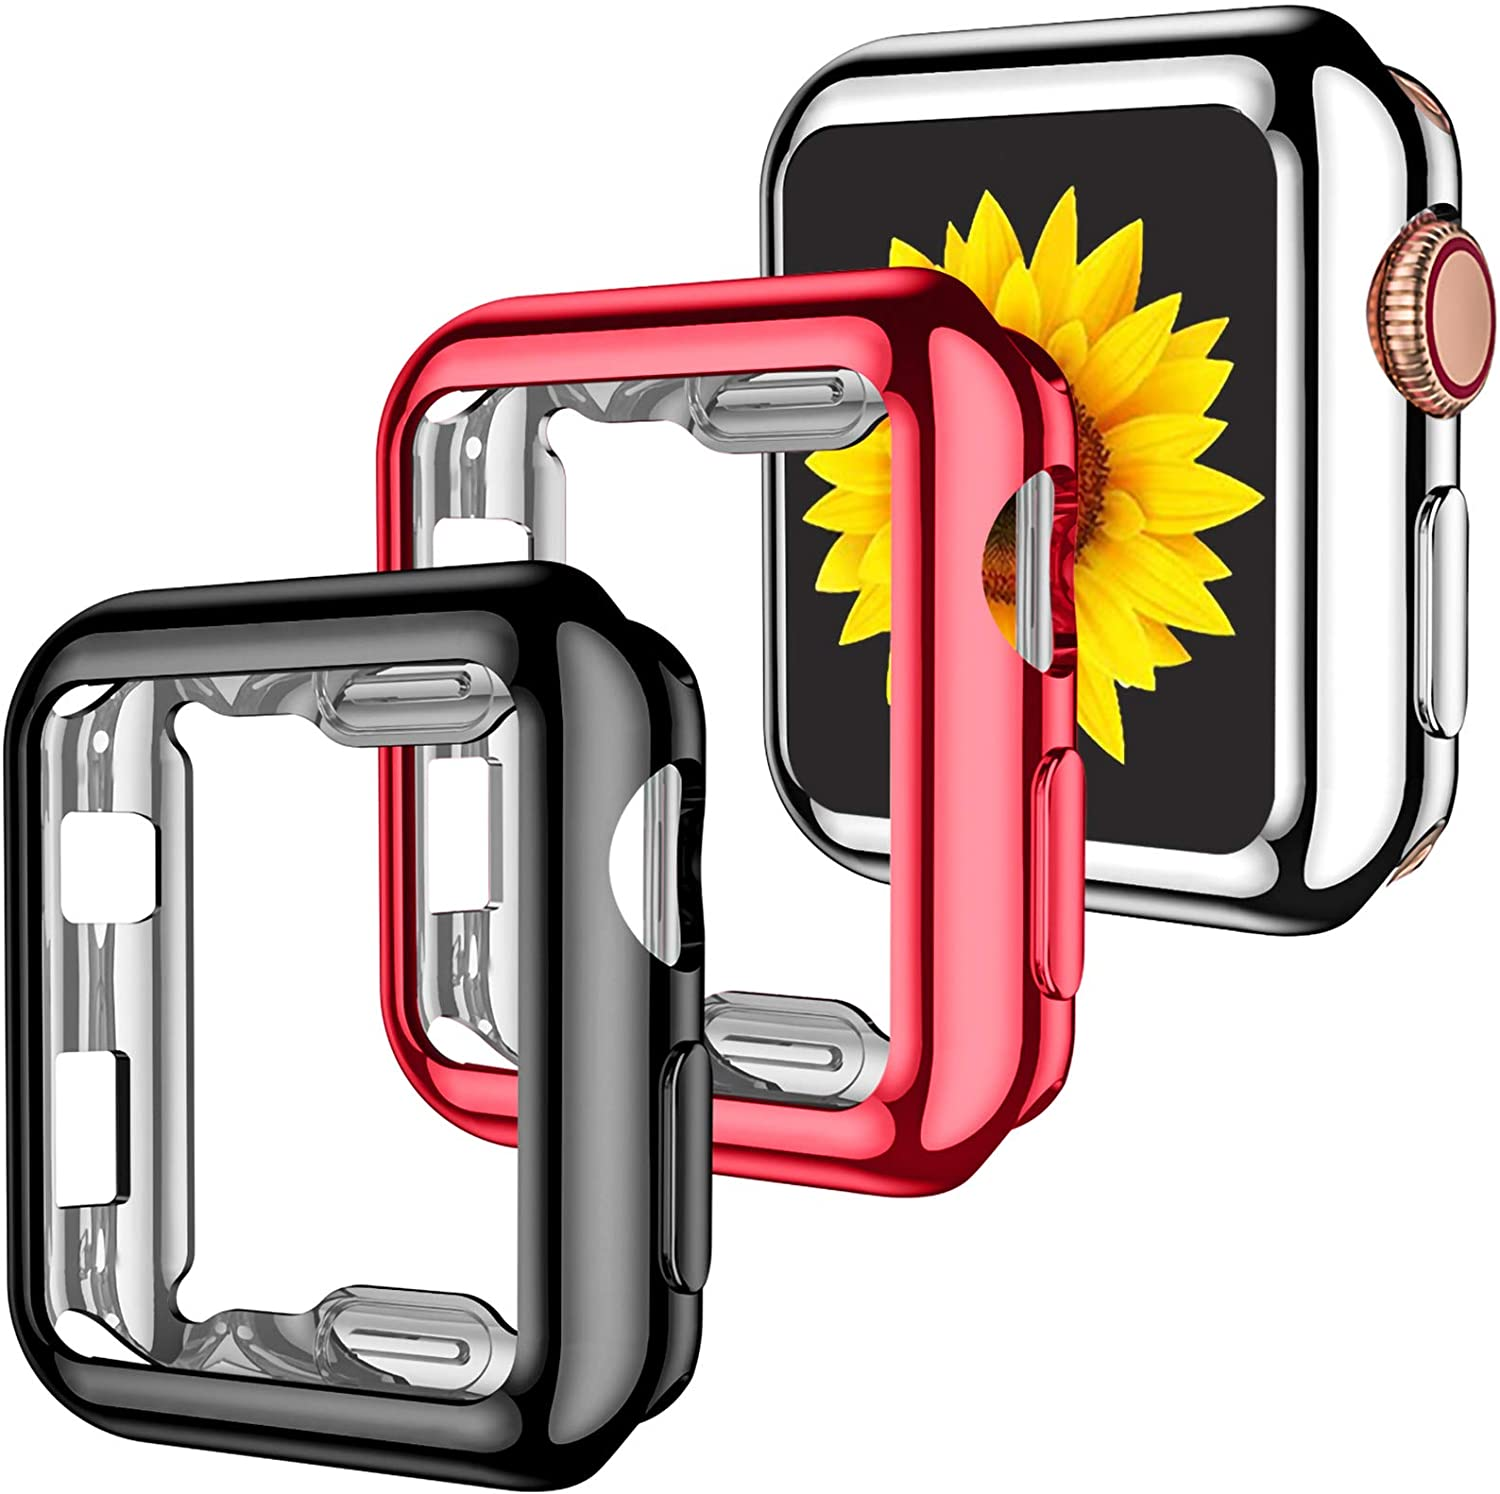 GEAK 3 Pack Compatible with Apple Watch Case 42mm, Full Protective Screen Protector Case HD Ultra-Thin Cover Compatible with iWatch Series 3/2/1 Bumper Case 42mm Black/Red/Silver